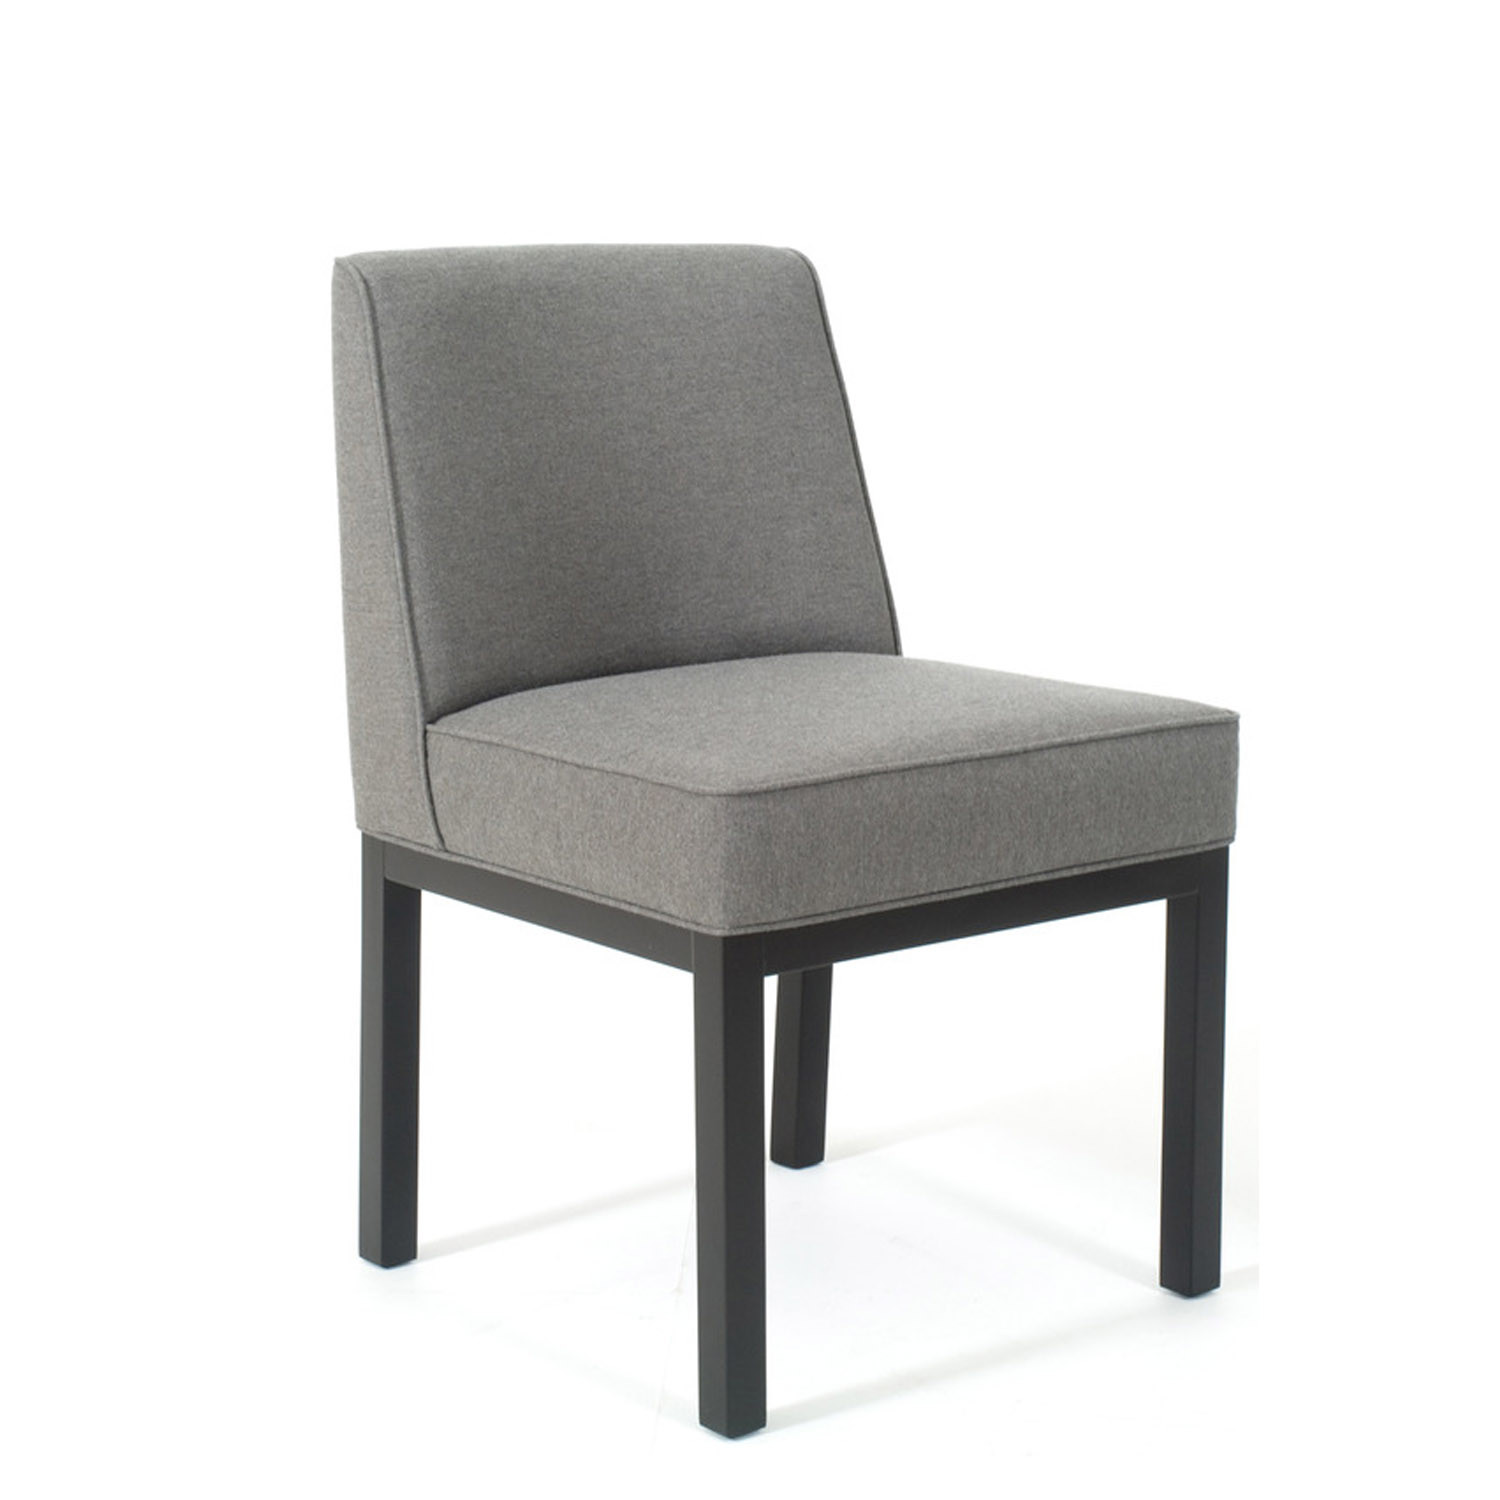 Wabbes Louise Dining Chair